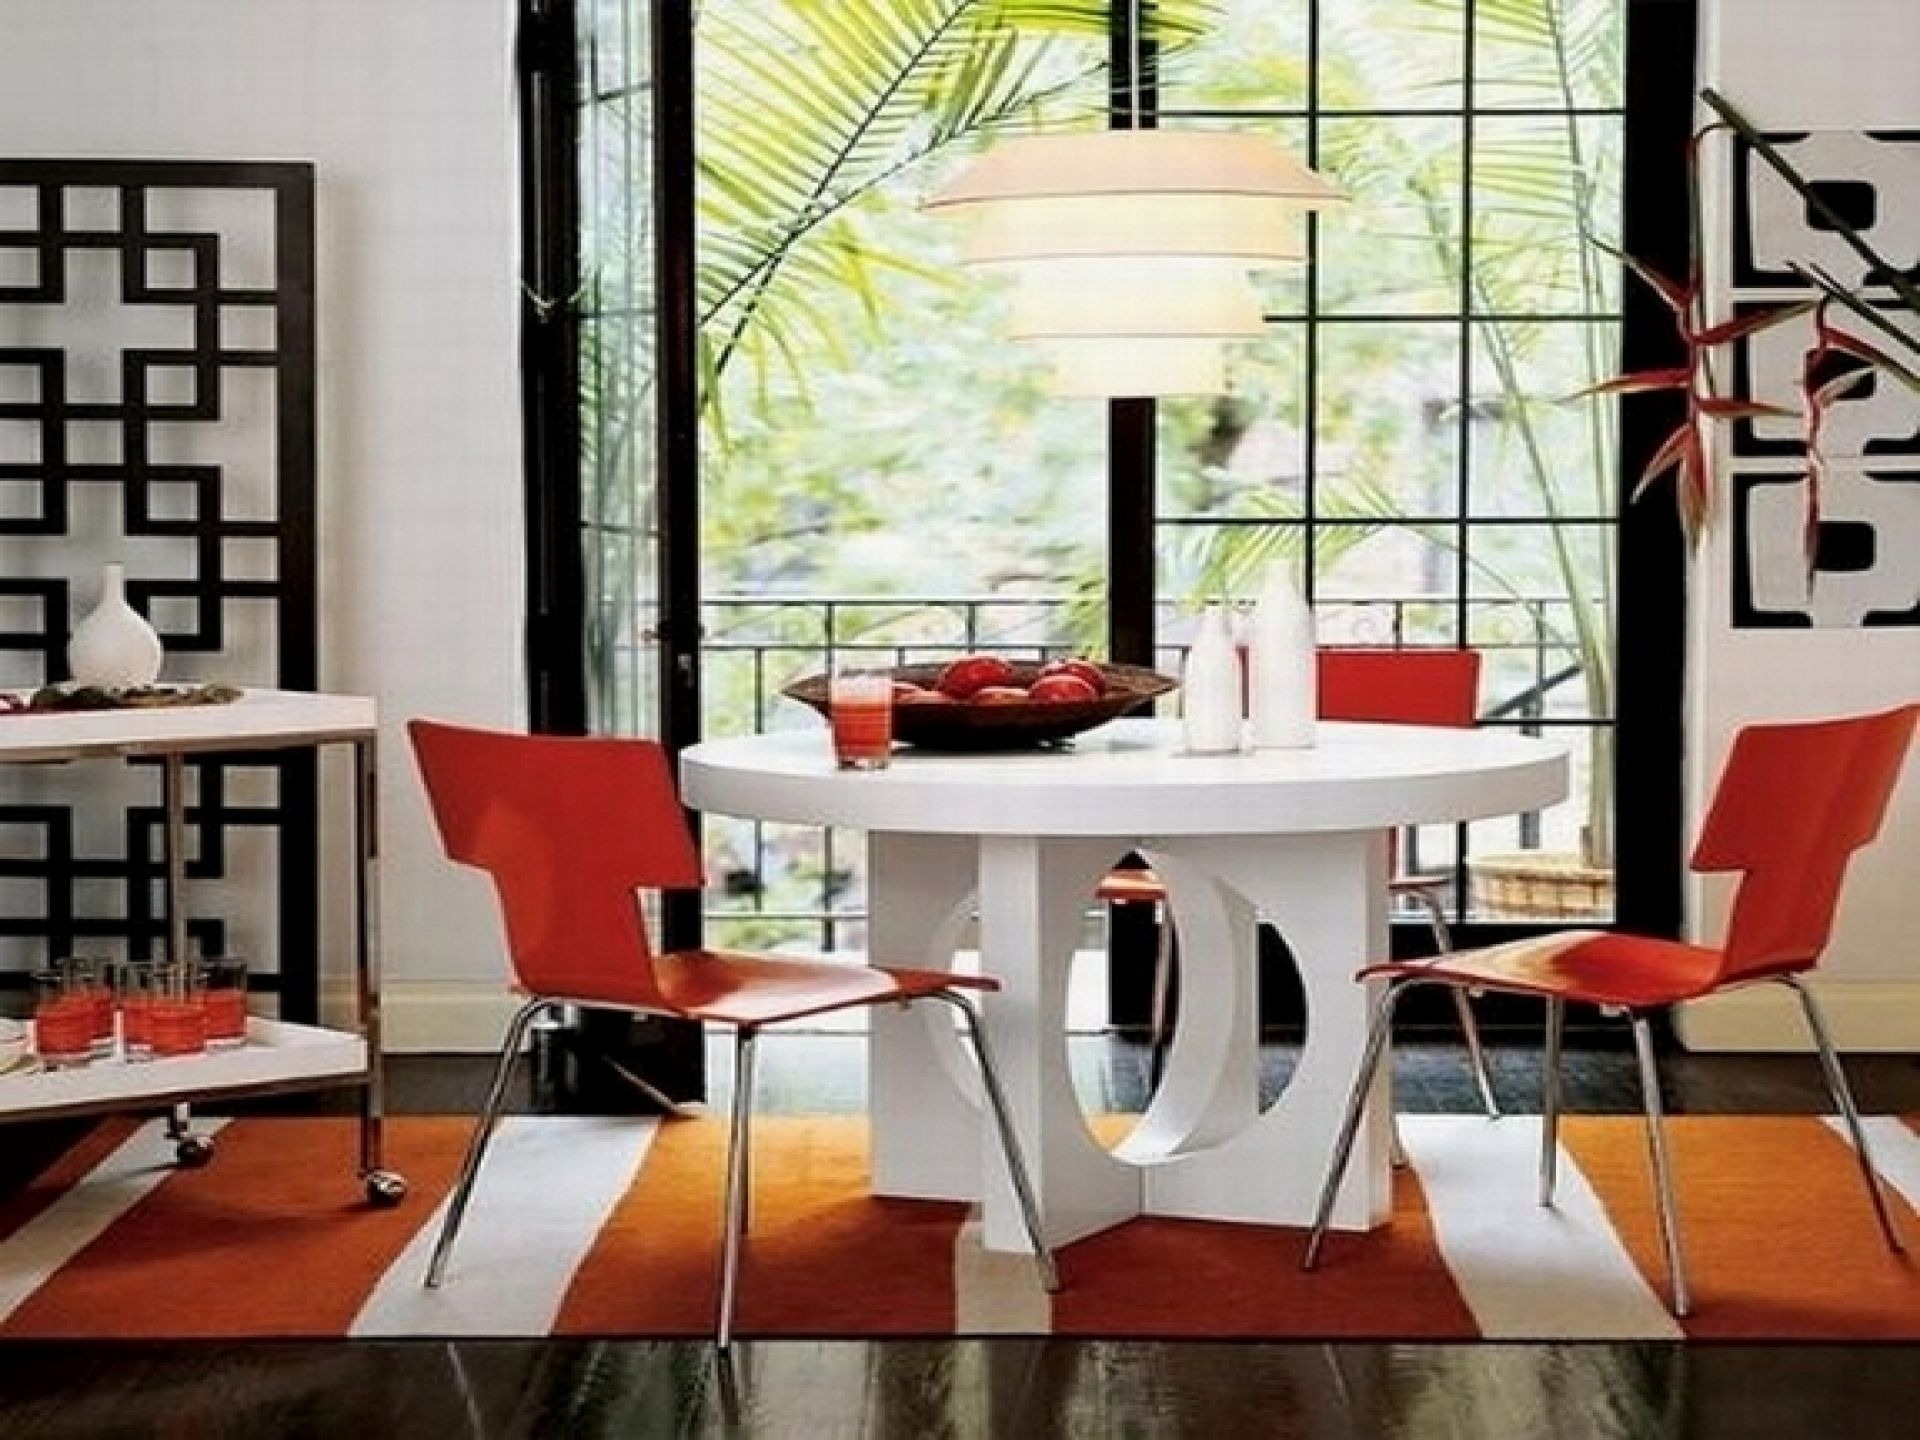 Asianstyle Interior Design Ideas  Small Space Kitchen Space Stunning Dining Room Designs For Small Spaces Design Ideas